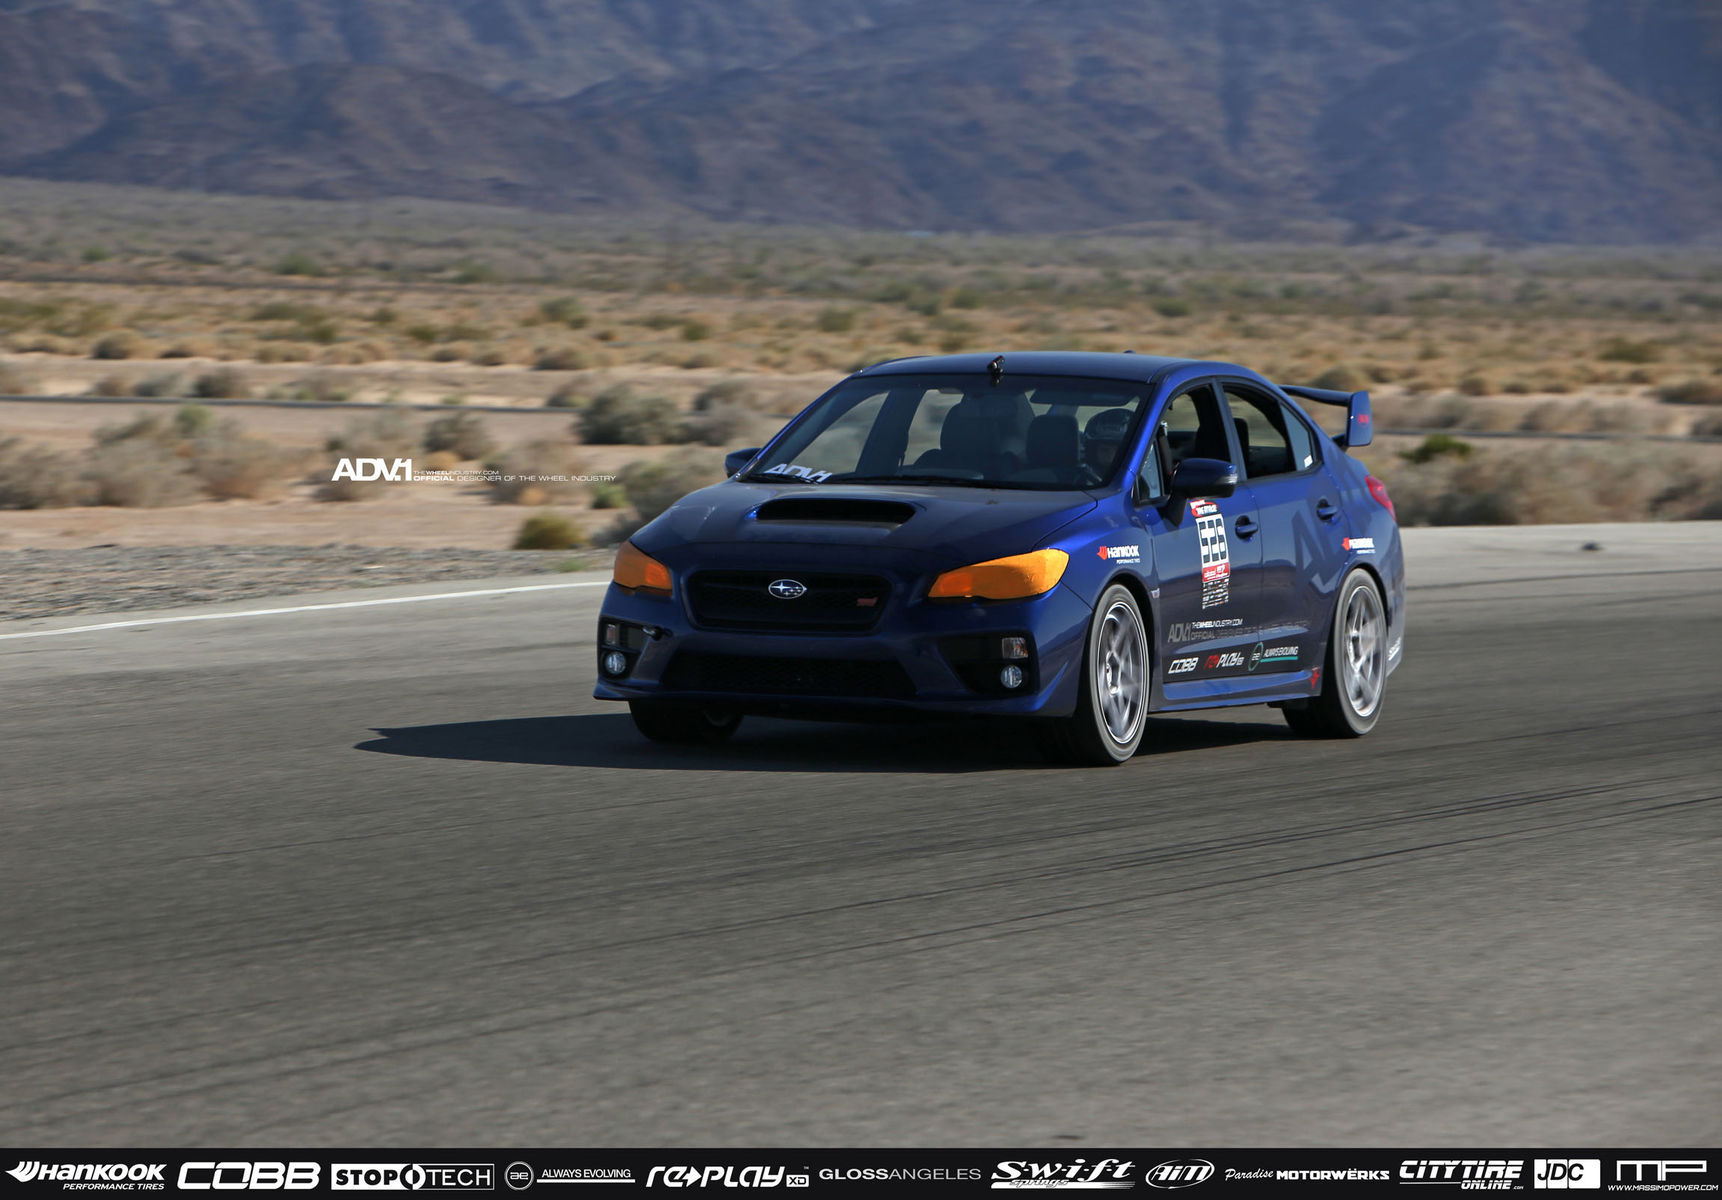 2015 Subaru WRX | SUBARU STI ADV5S REDLINE TIME ATTACK: ROUND 3 - CHUCKWALLA VALLEY RACEWAY - MAY 3